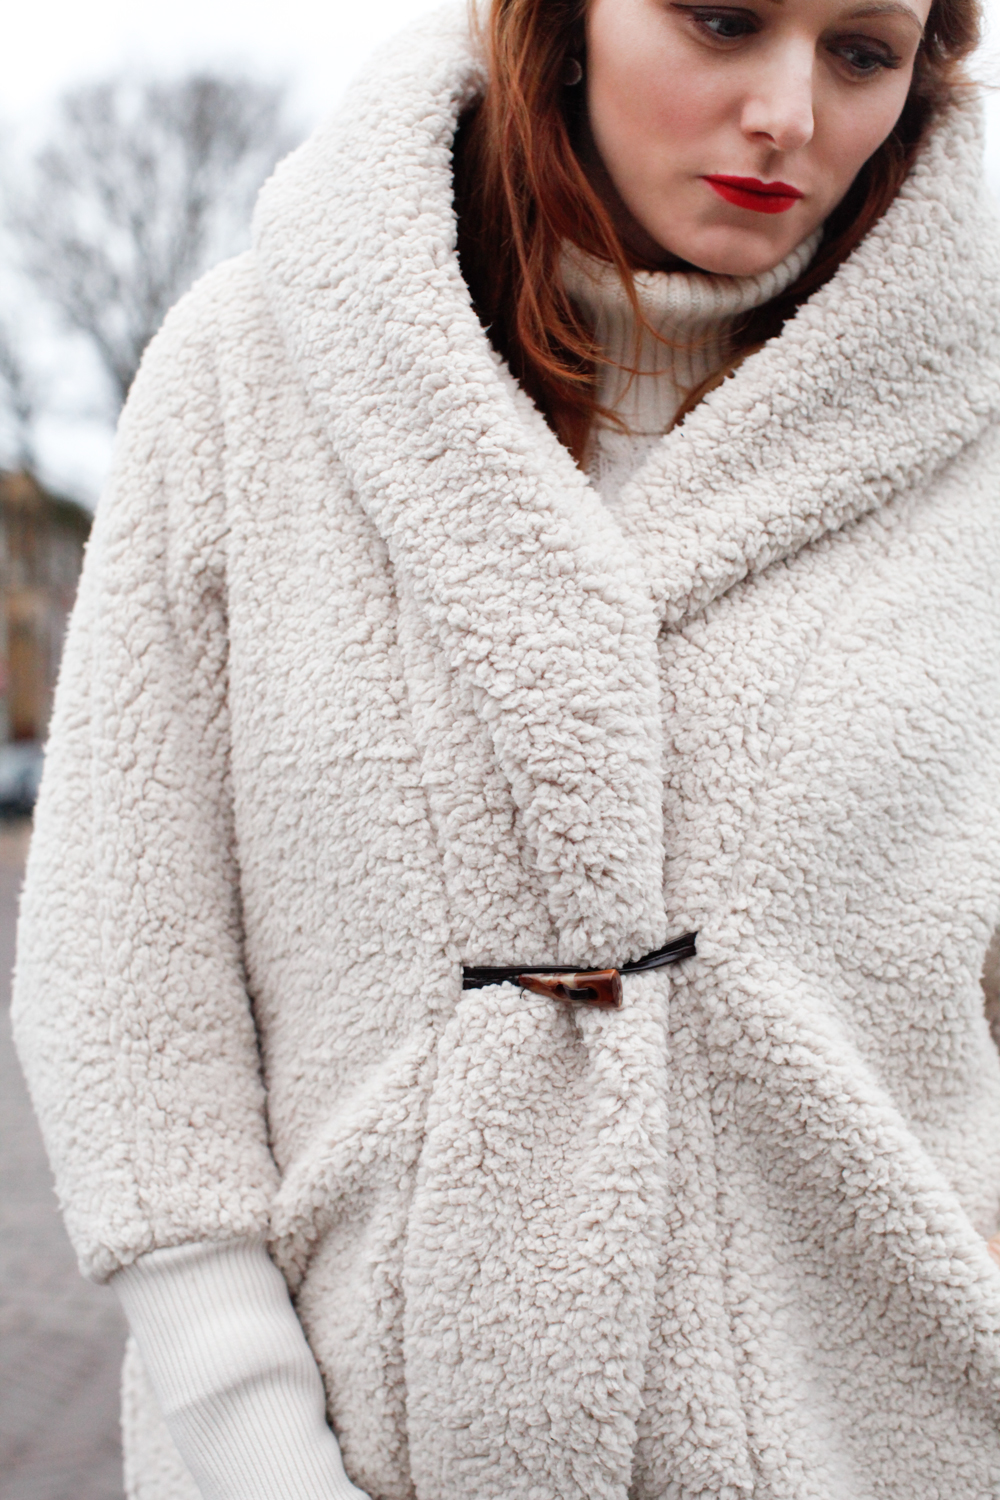 Fluffy coat to keep you warm